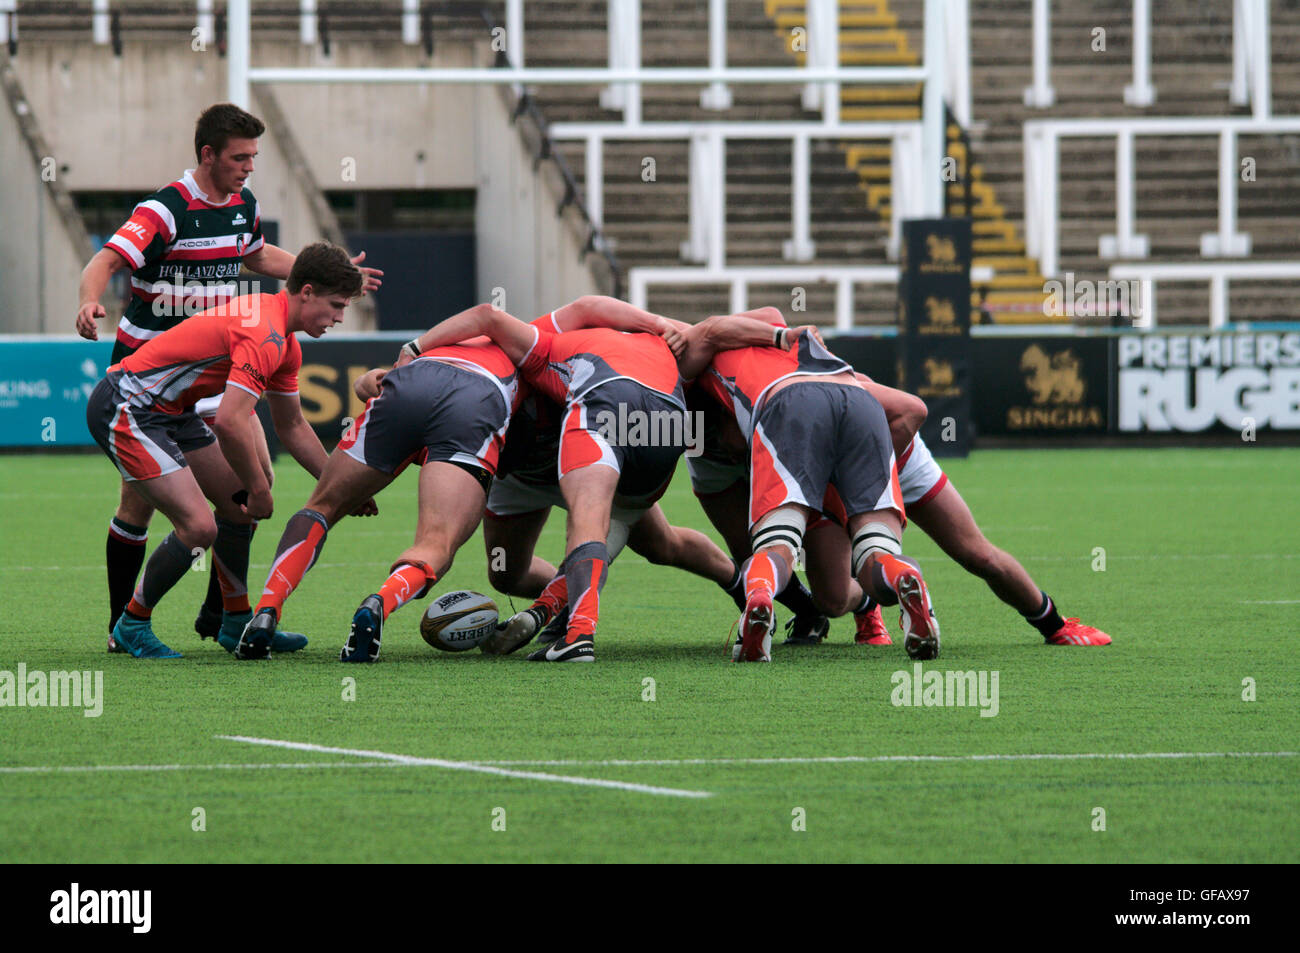 Newcastle upon Tyne, UK, 30 July 2016, Newcastle Falcons win a scrum during their match against Leicester Tigers - Stock Image